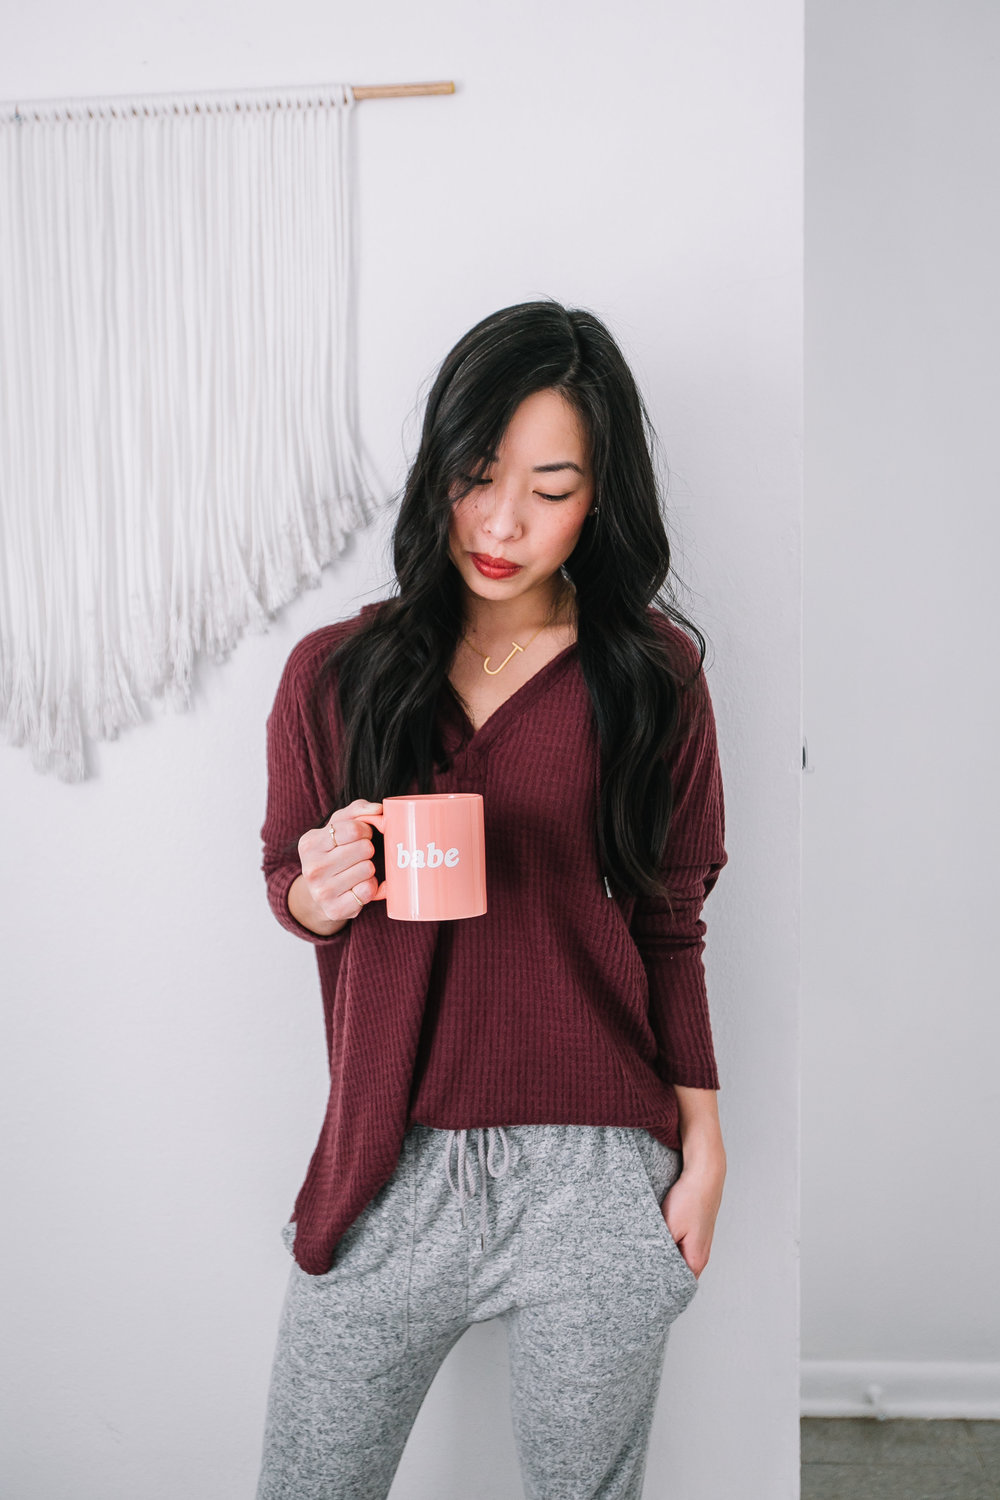 dating tips & galentine's day in loungewear